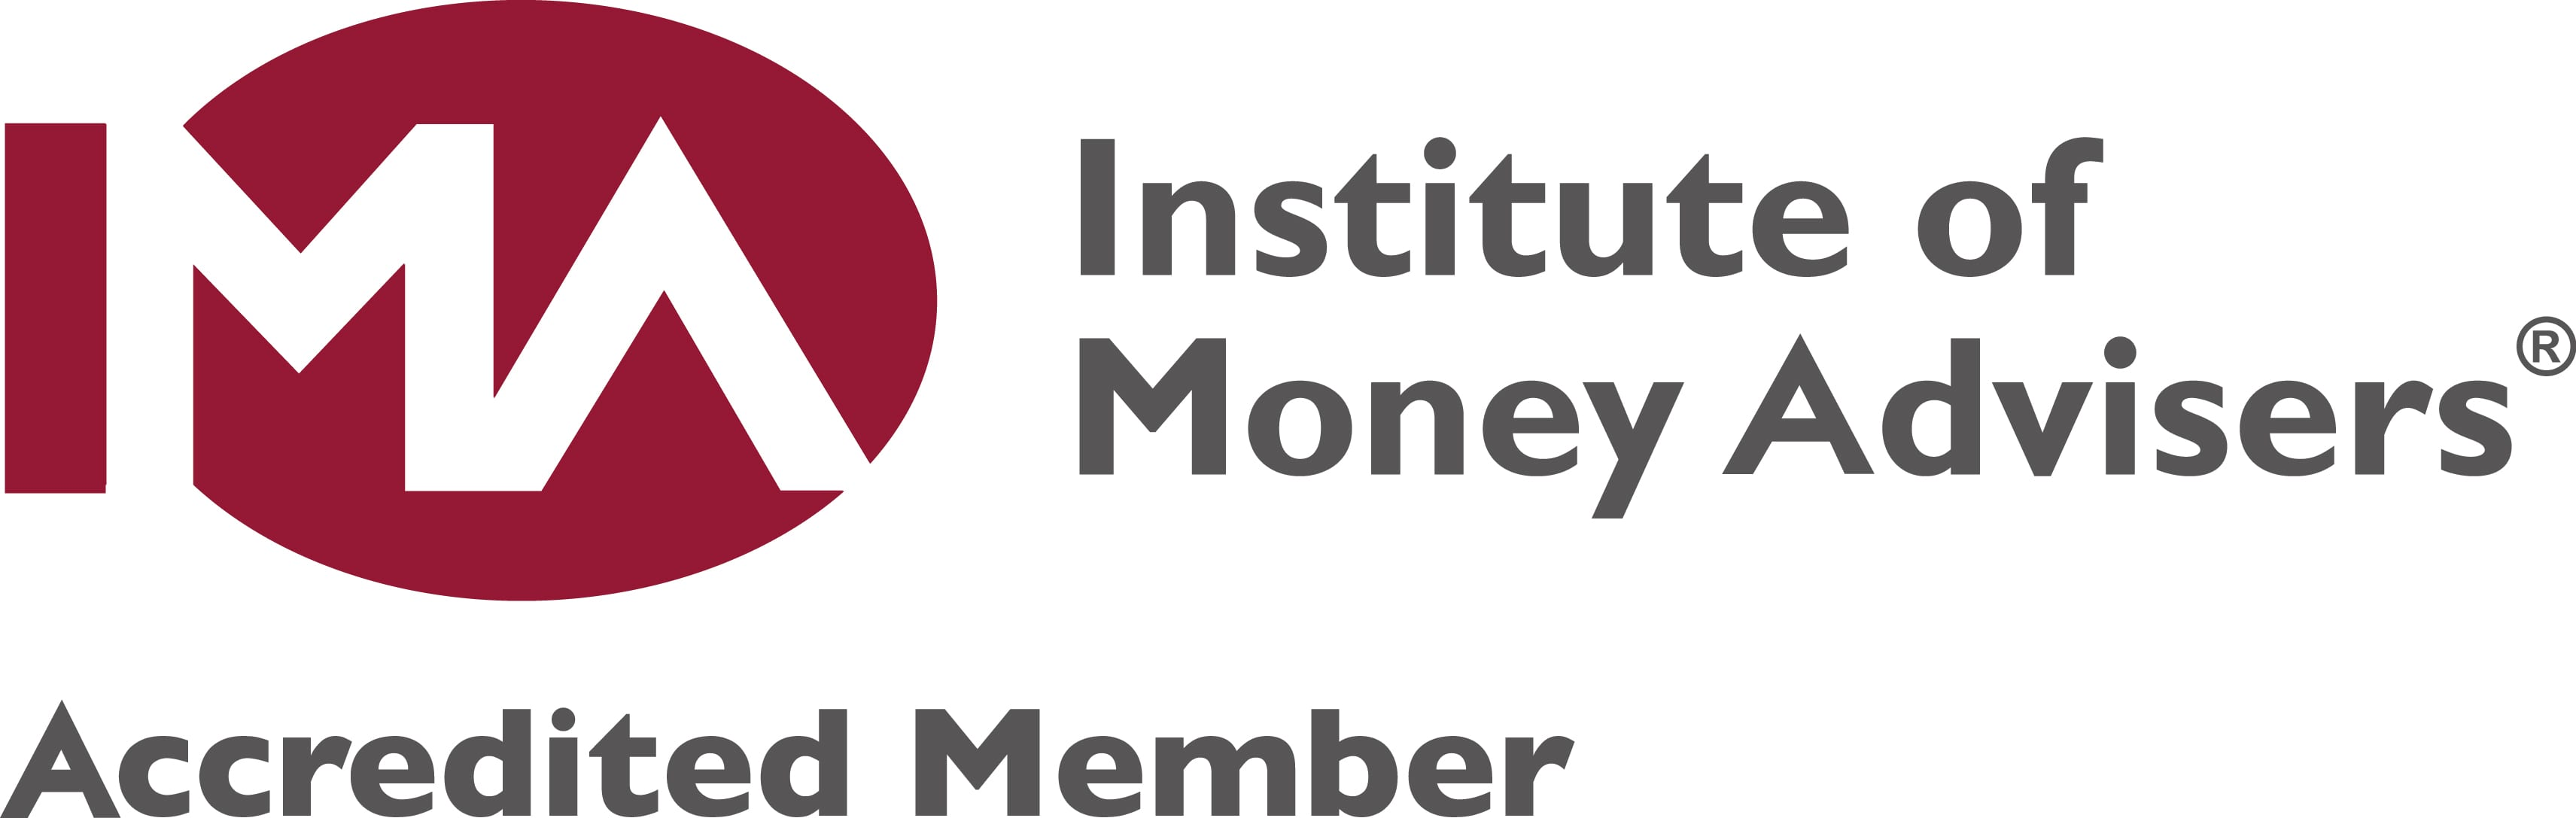 IMA Accredited member logo